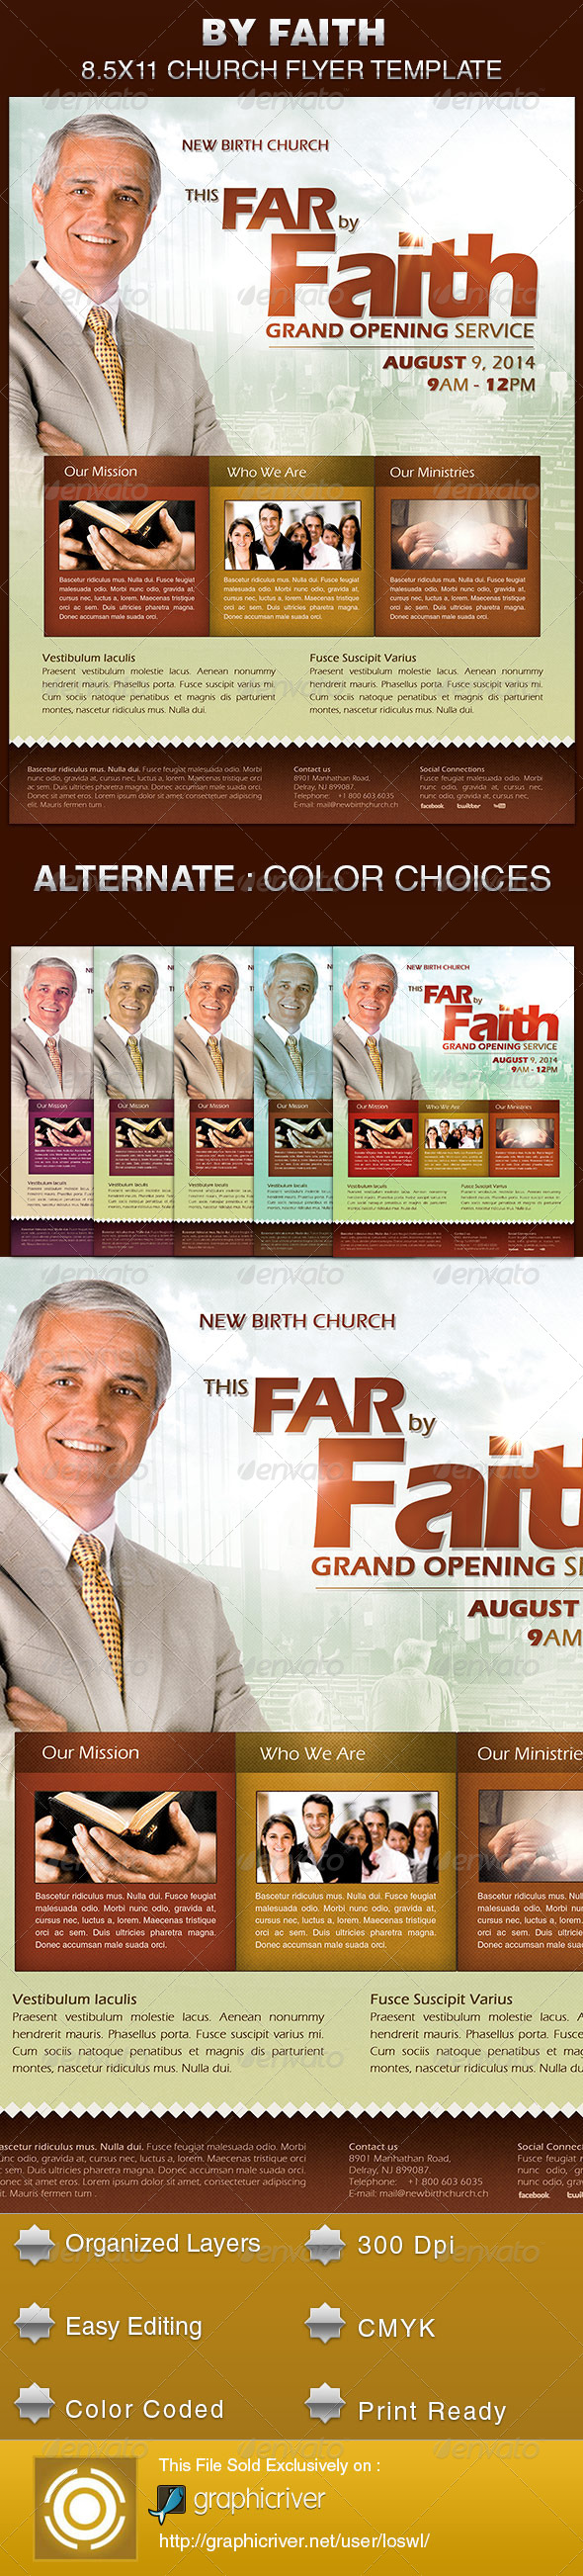 By Faith Church Grand Opening Flyer Template - Church Flyers